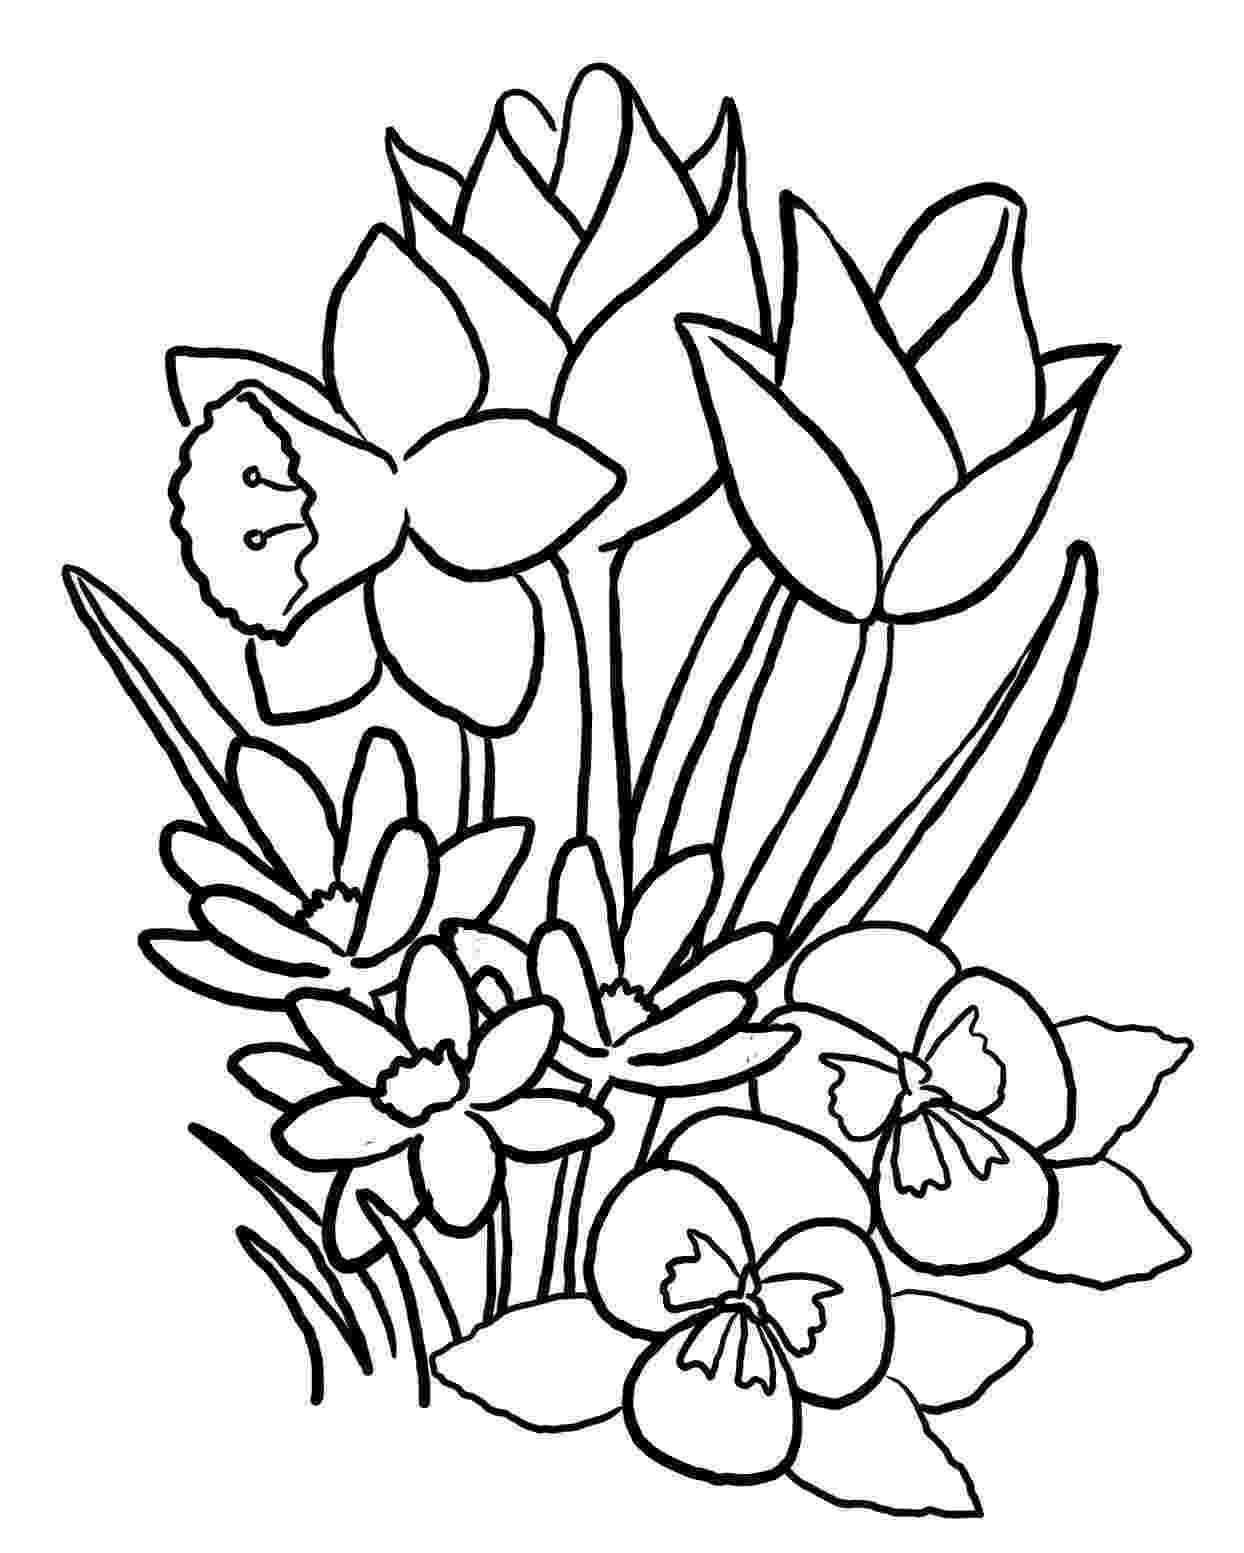 flowers coloring pages printable simple flower coloring pages getcoloringpagescom flowers coloring pages printable